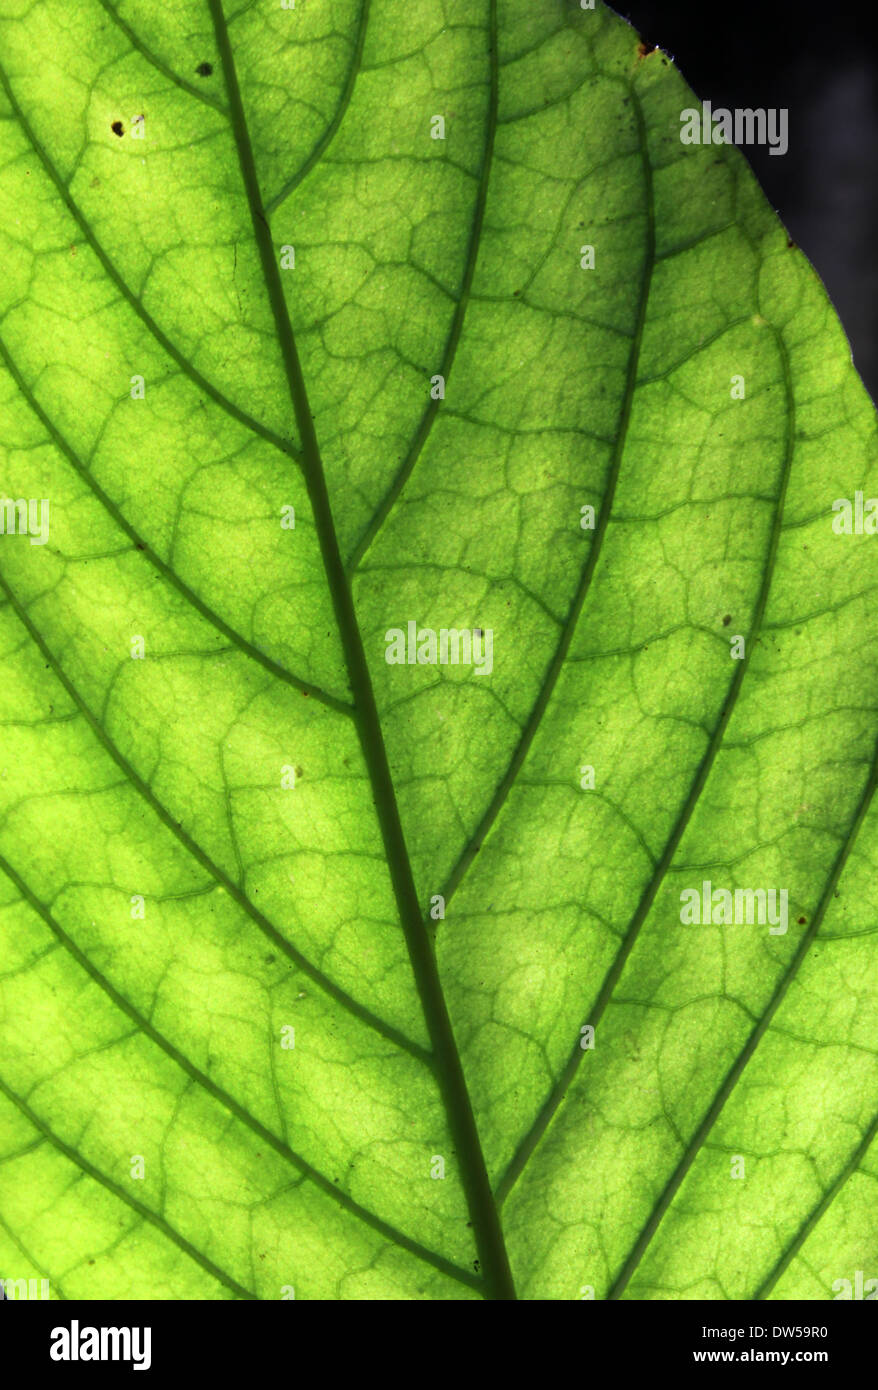 Veins of a leaf against sunlight - Stock Image